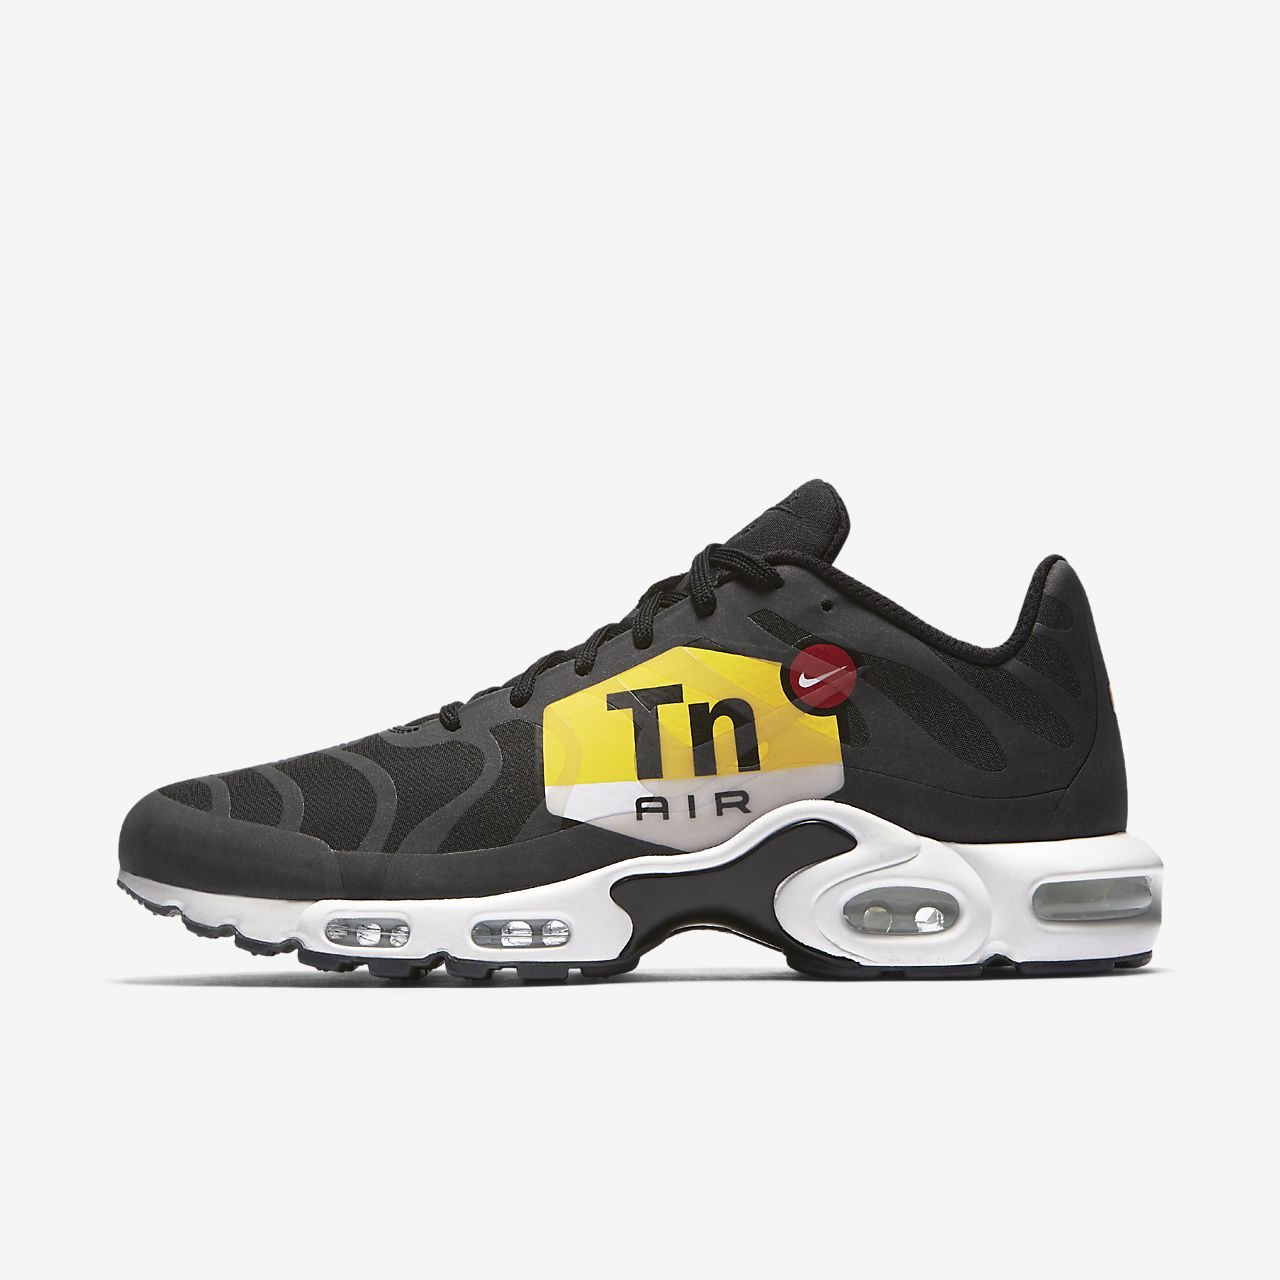 zapatillas nike air max tn